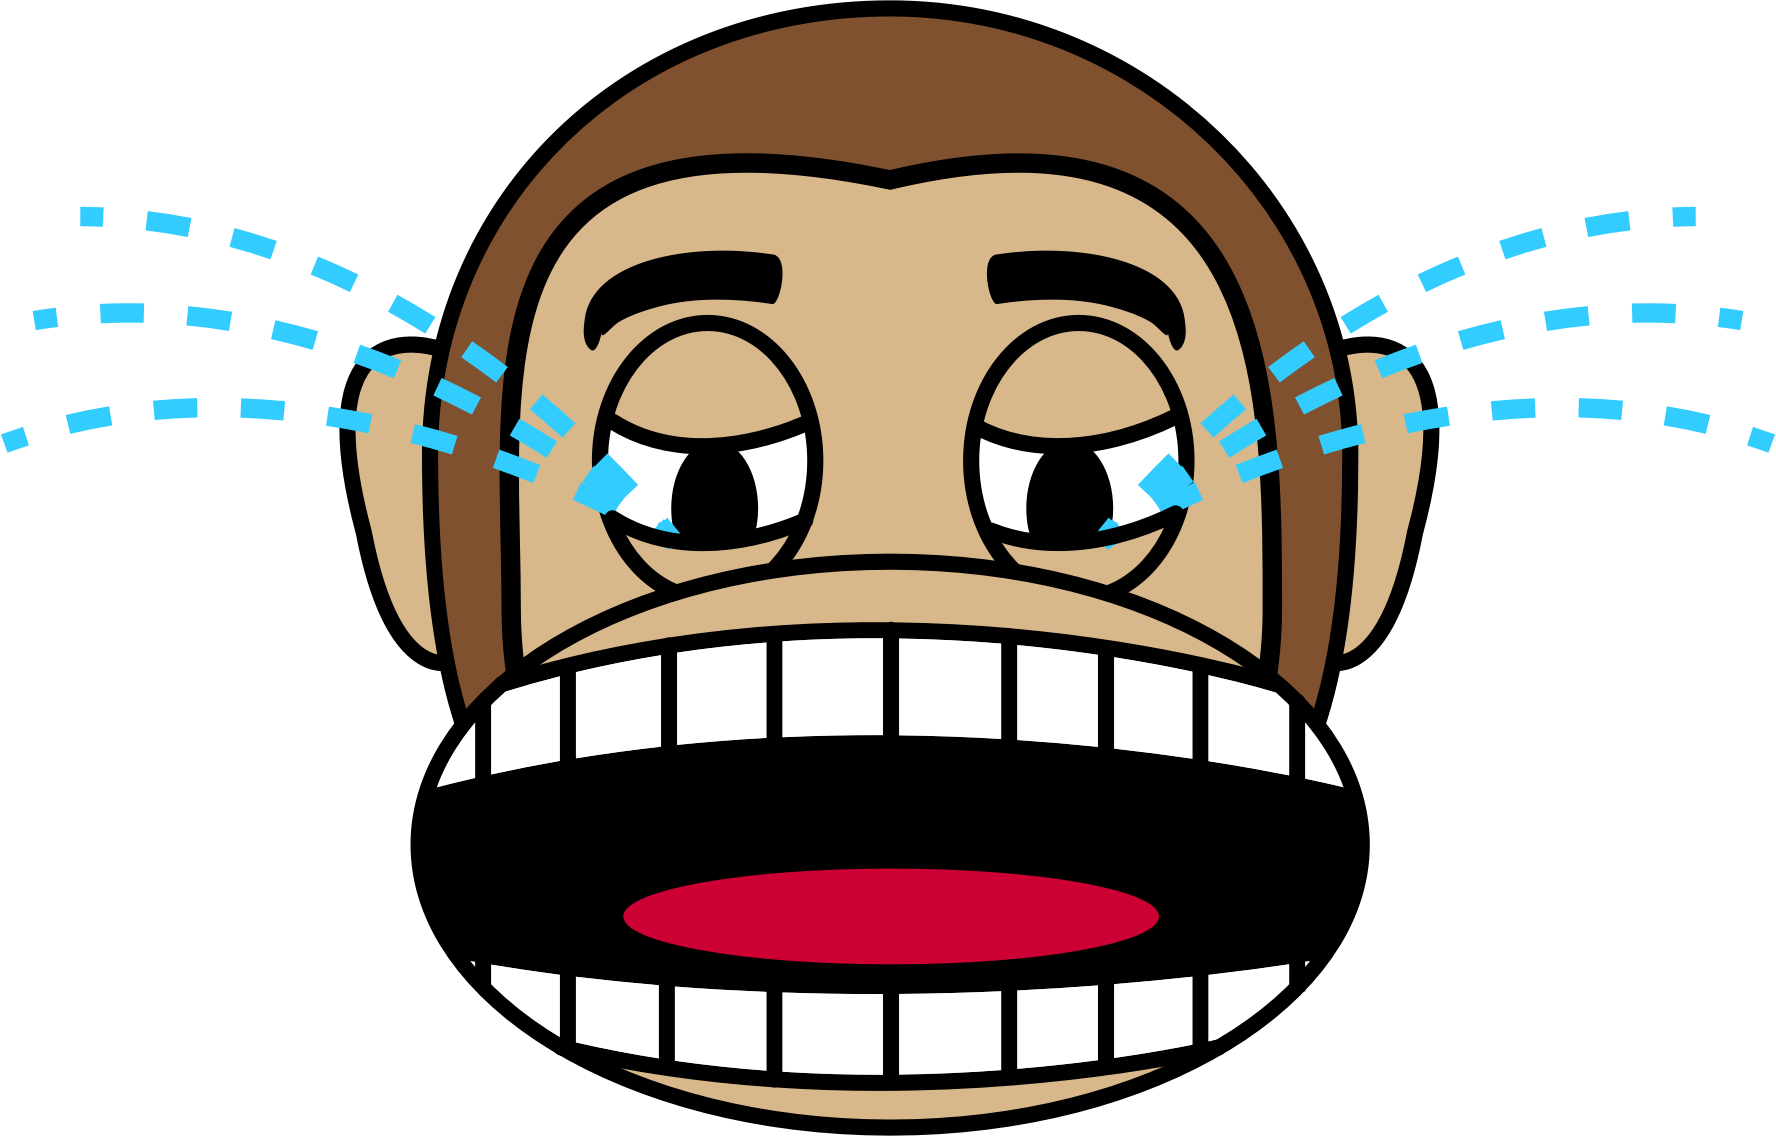 Cry clipart baby mouth. Monkey emoji loudly crying